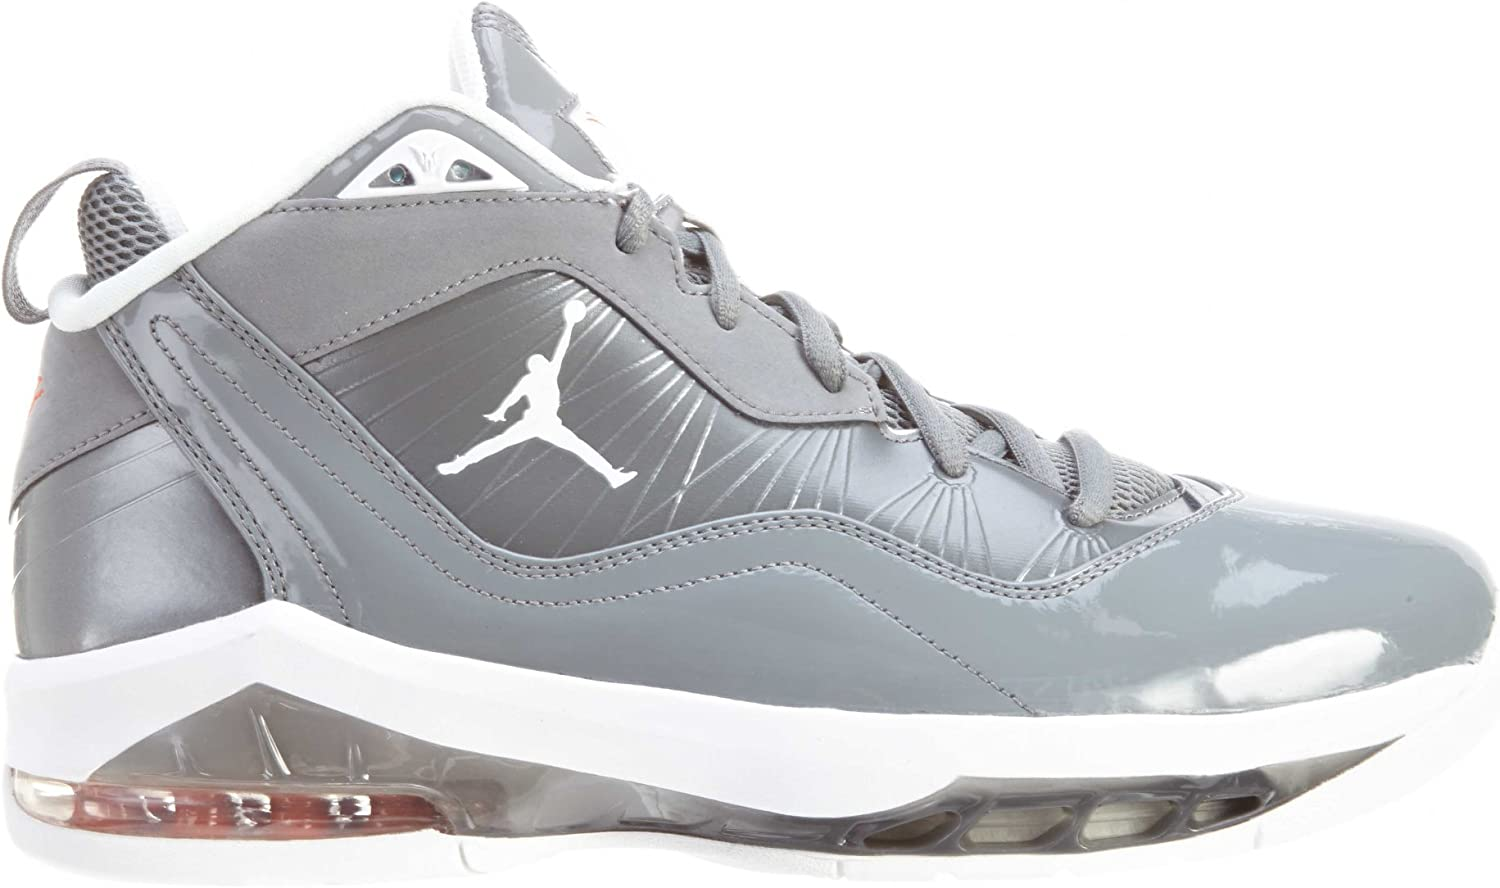 Nike Air Jordan Melo M8 Mens Basketball Shoes refroidissent